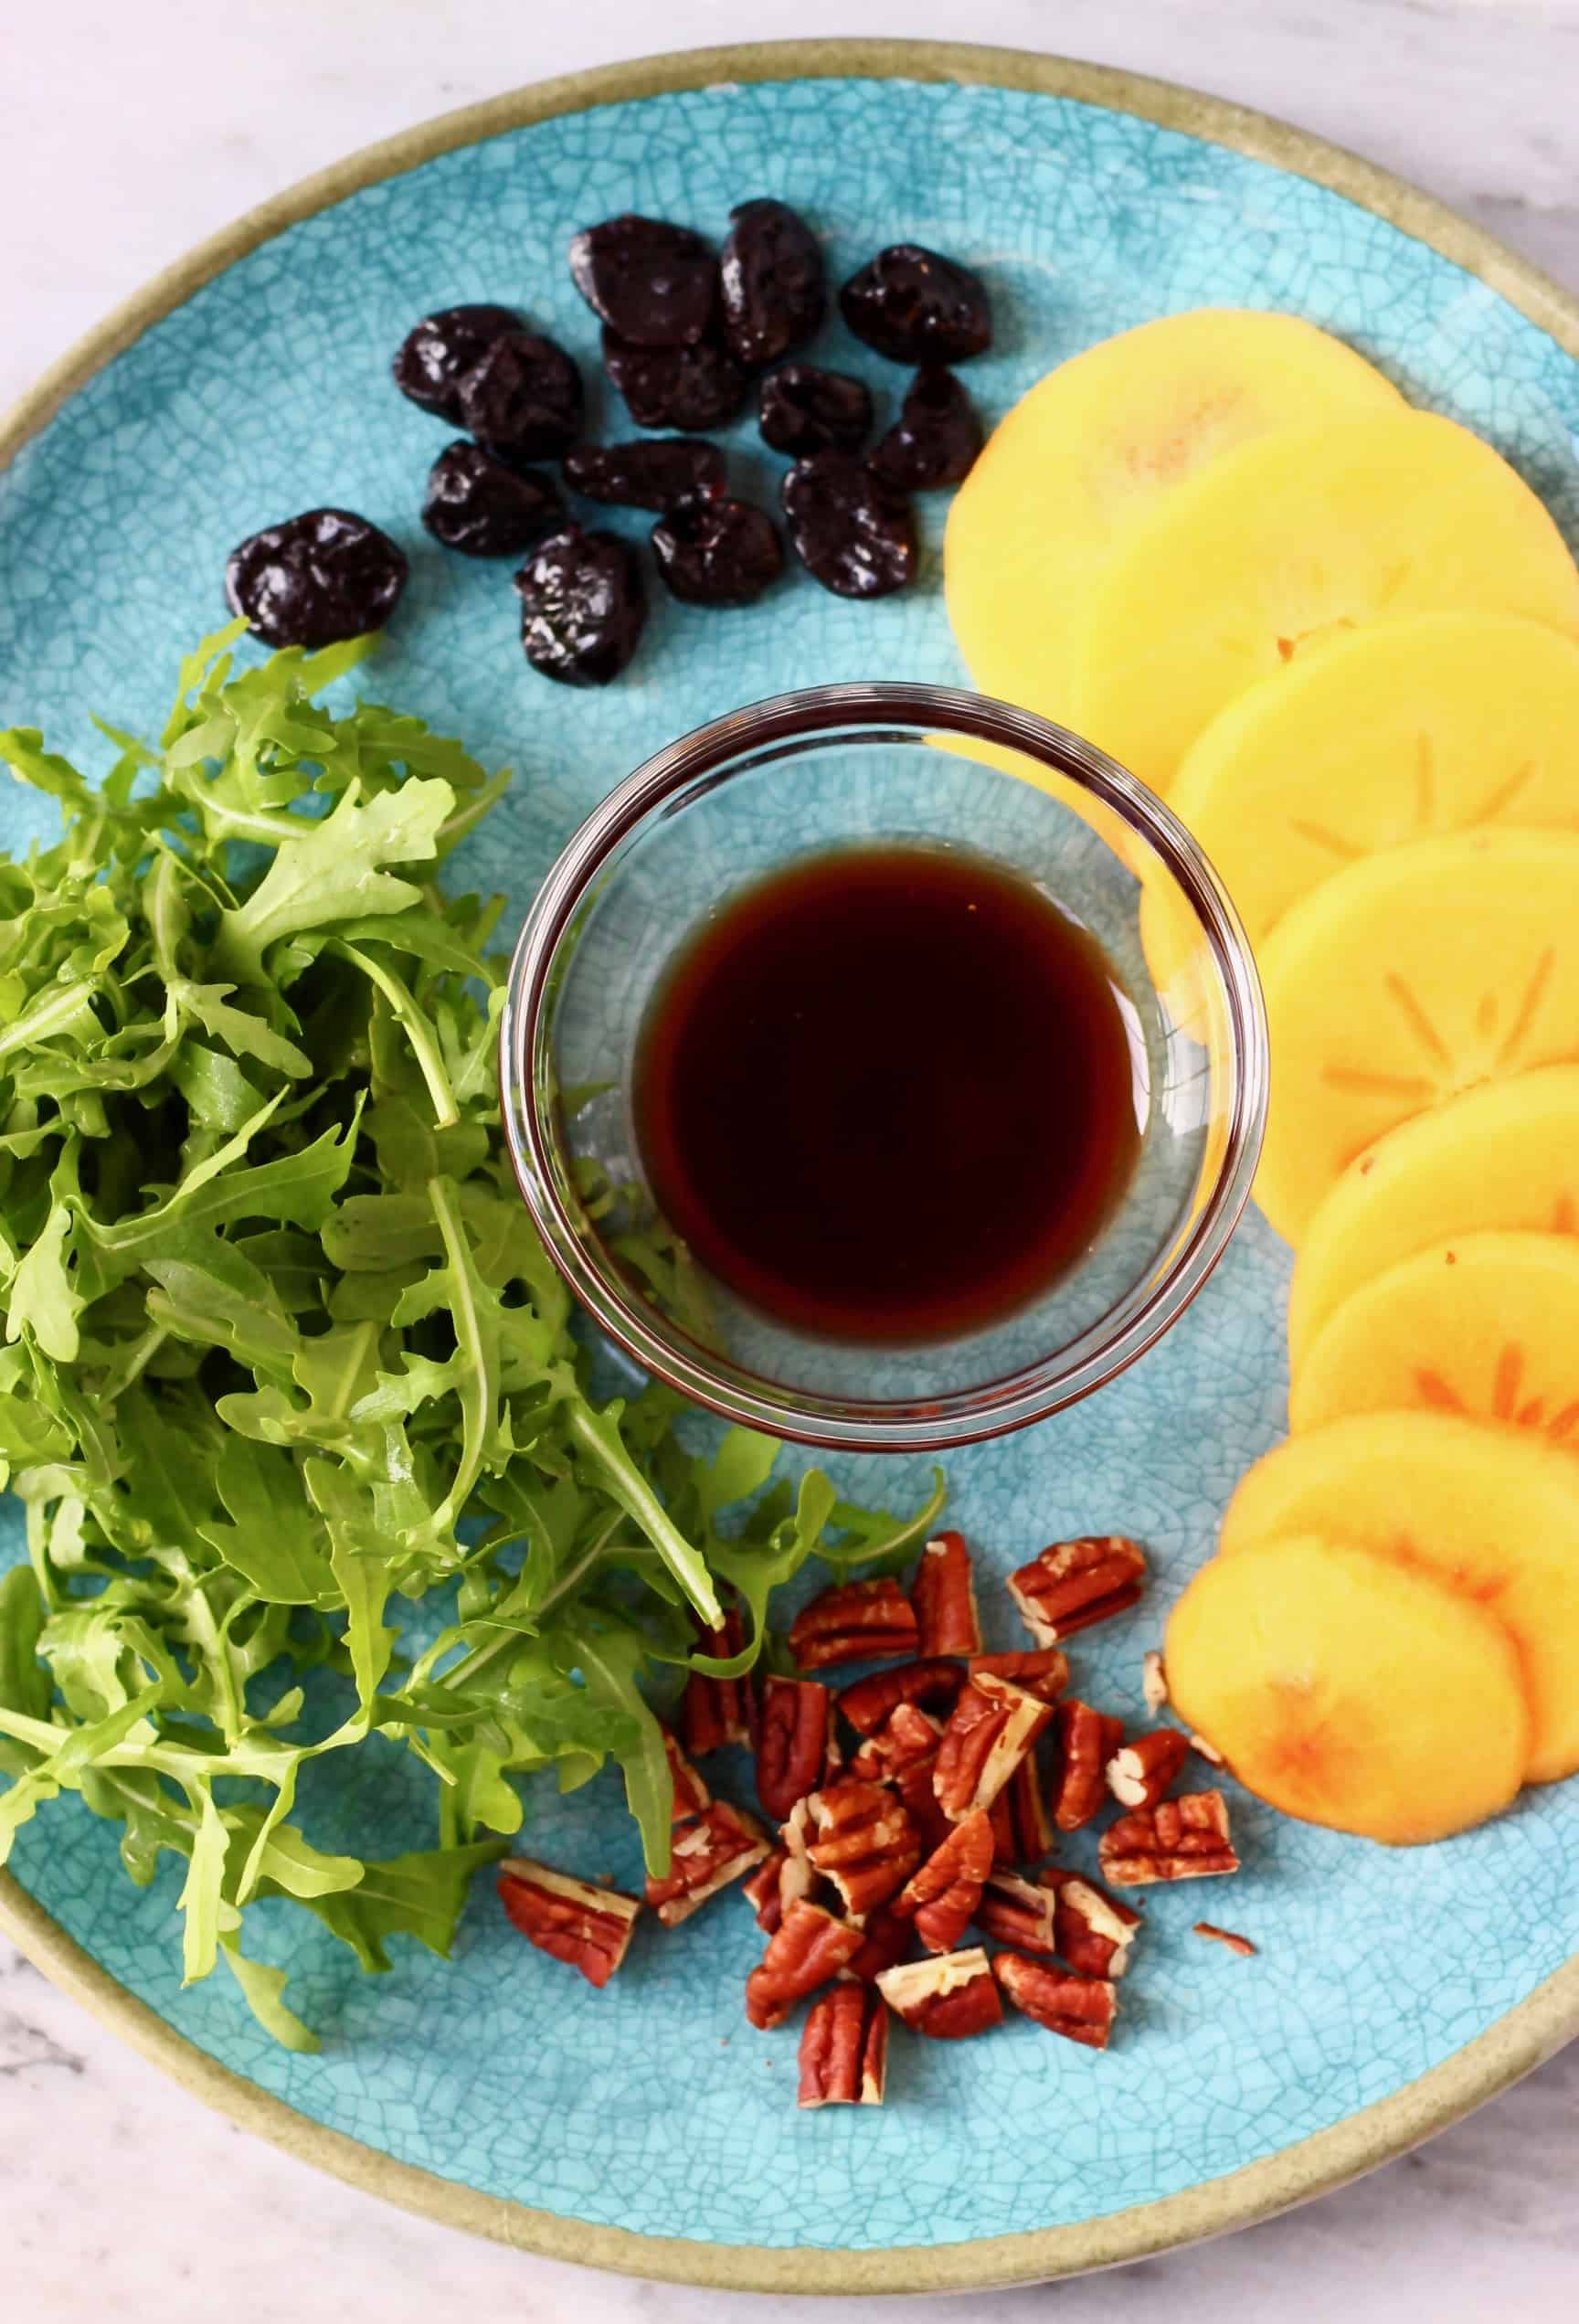 Persimmon slices, dried cherries, rocket, chopped pecan nuts and a brown dressing in a bowl on a plate